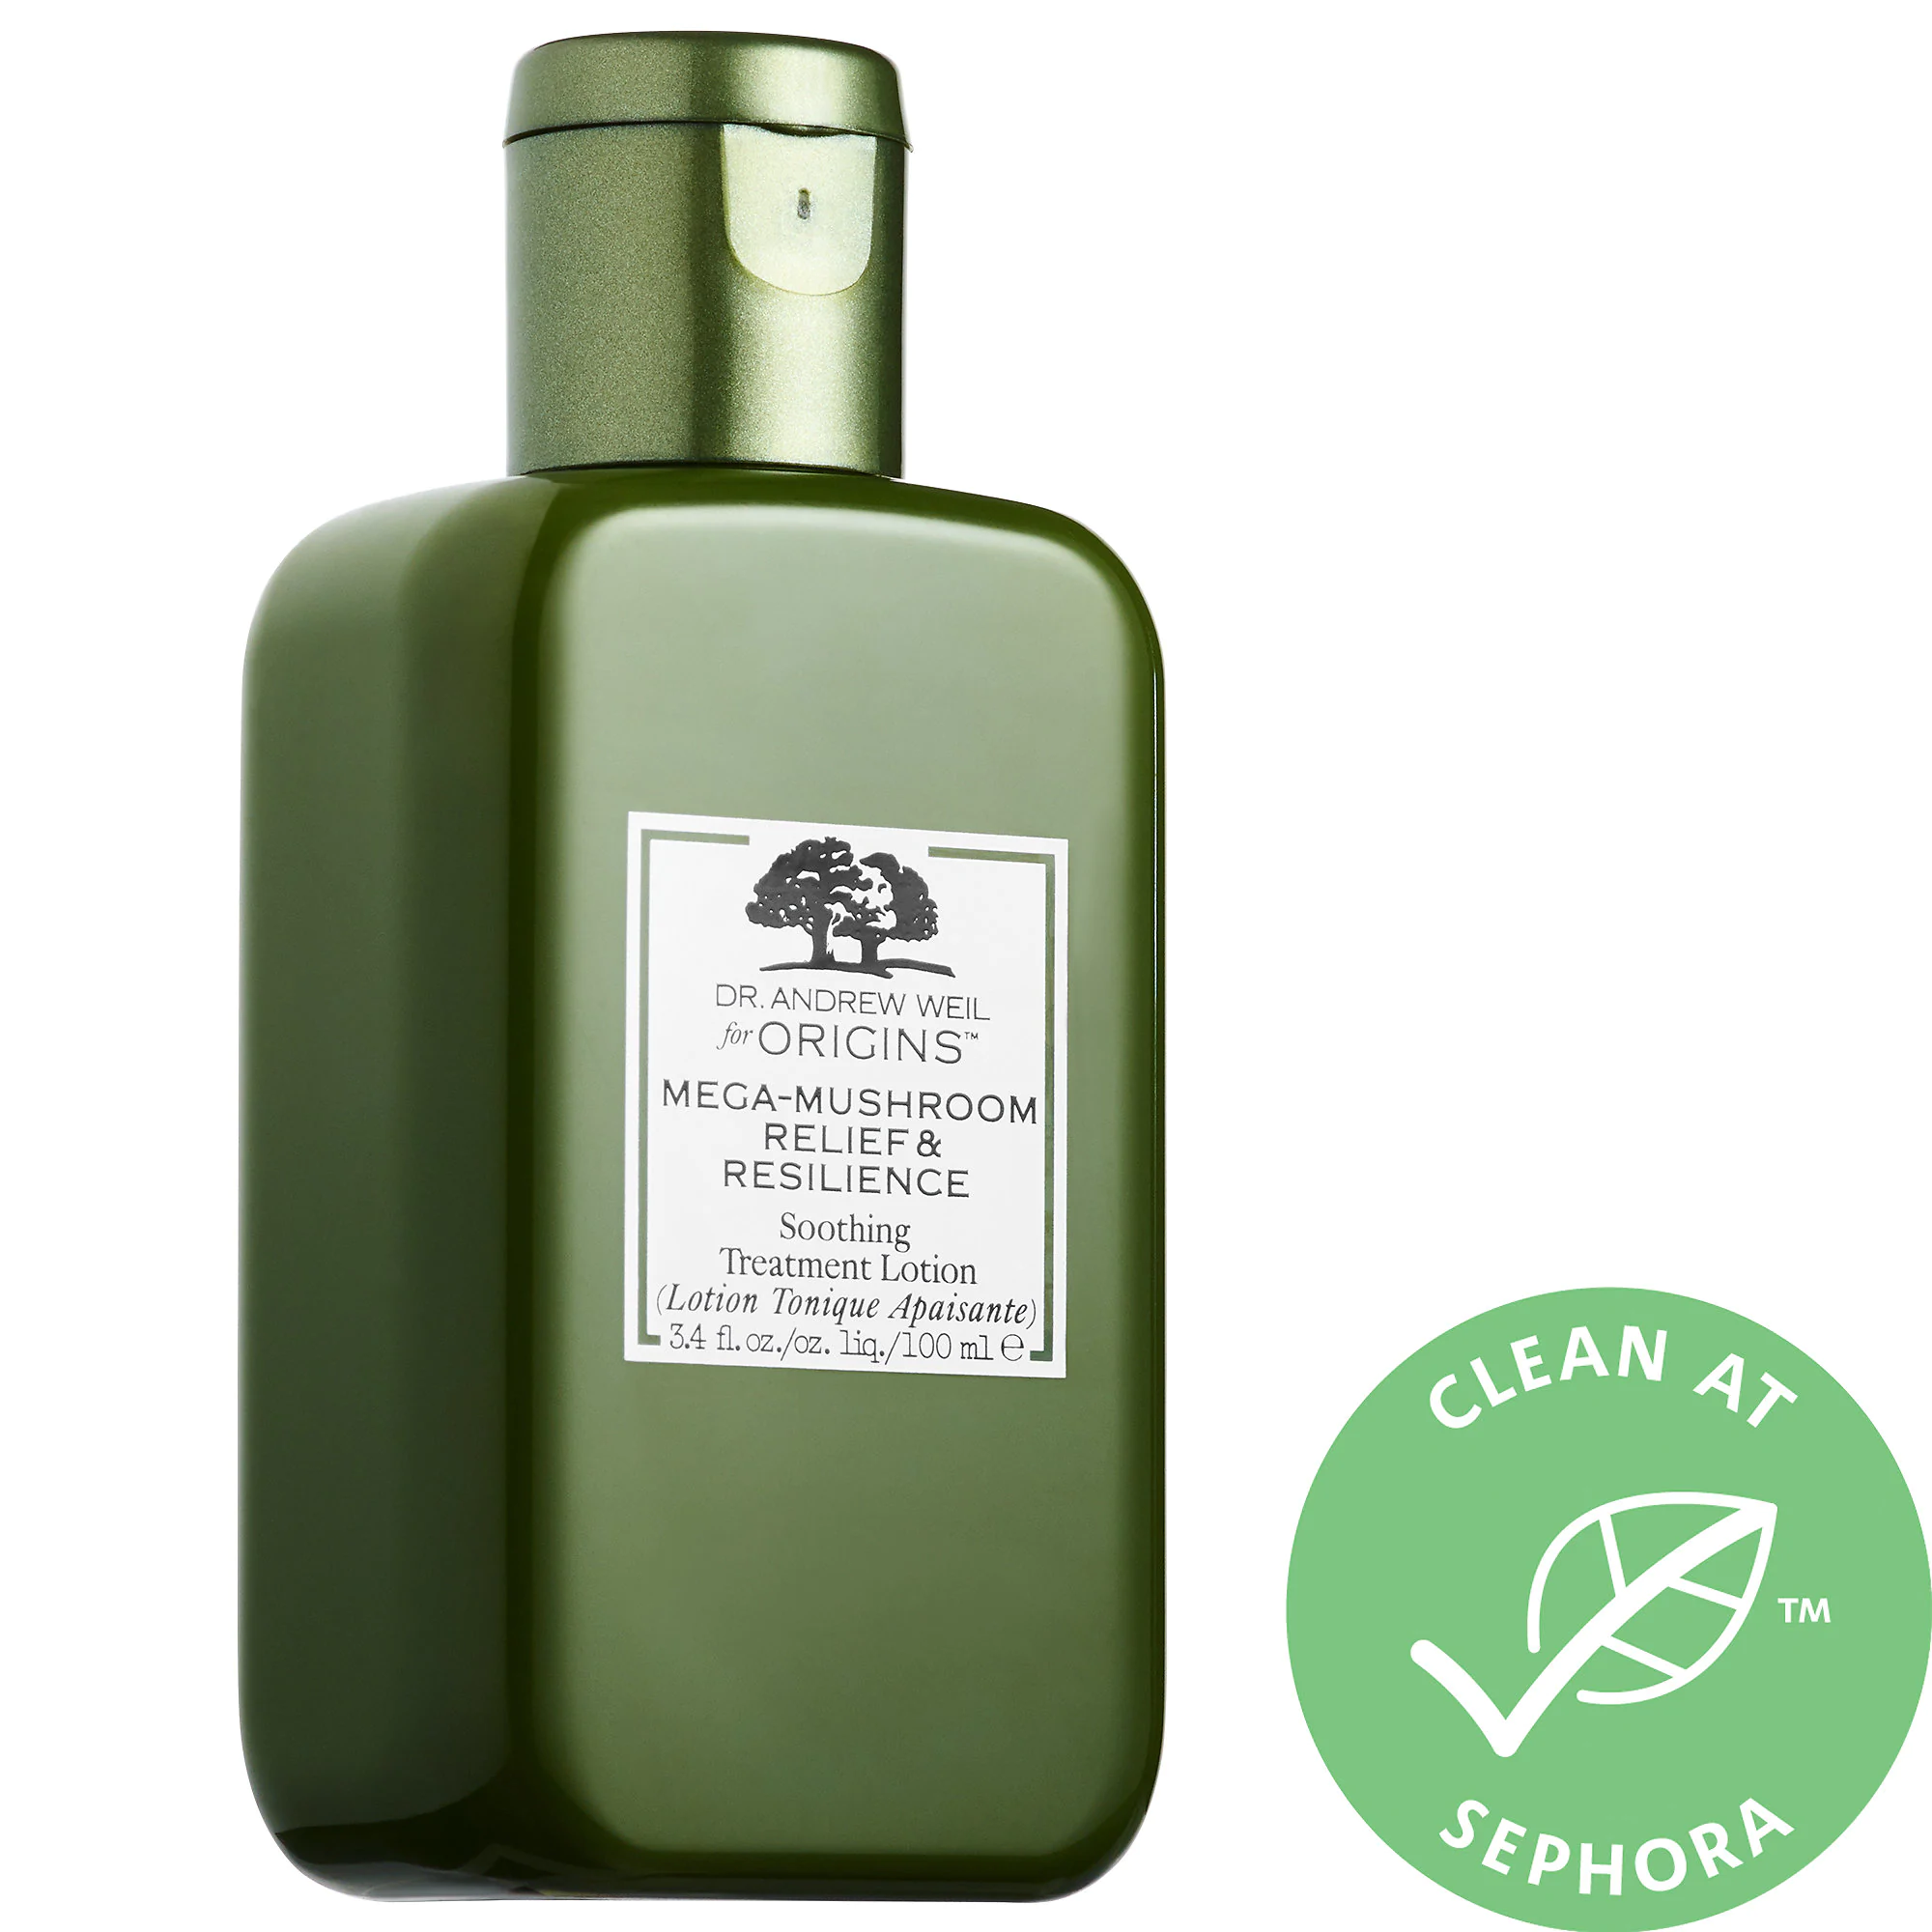 Origins-Dr. Andrew Weil For Origins™ Mega-Mushroom Relief & Resilience Soothing Treatment Lotion